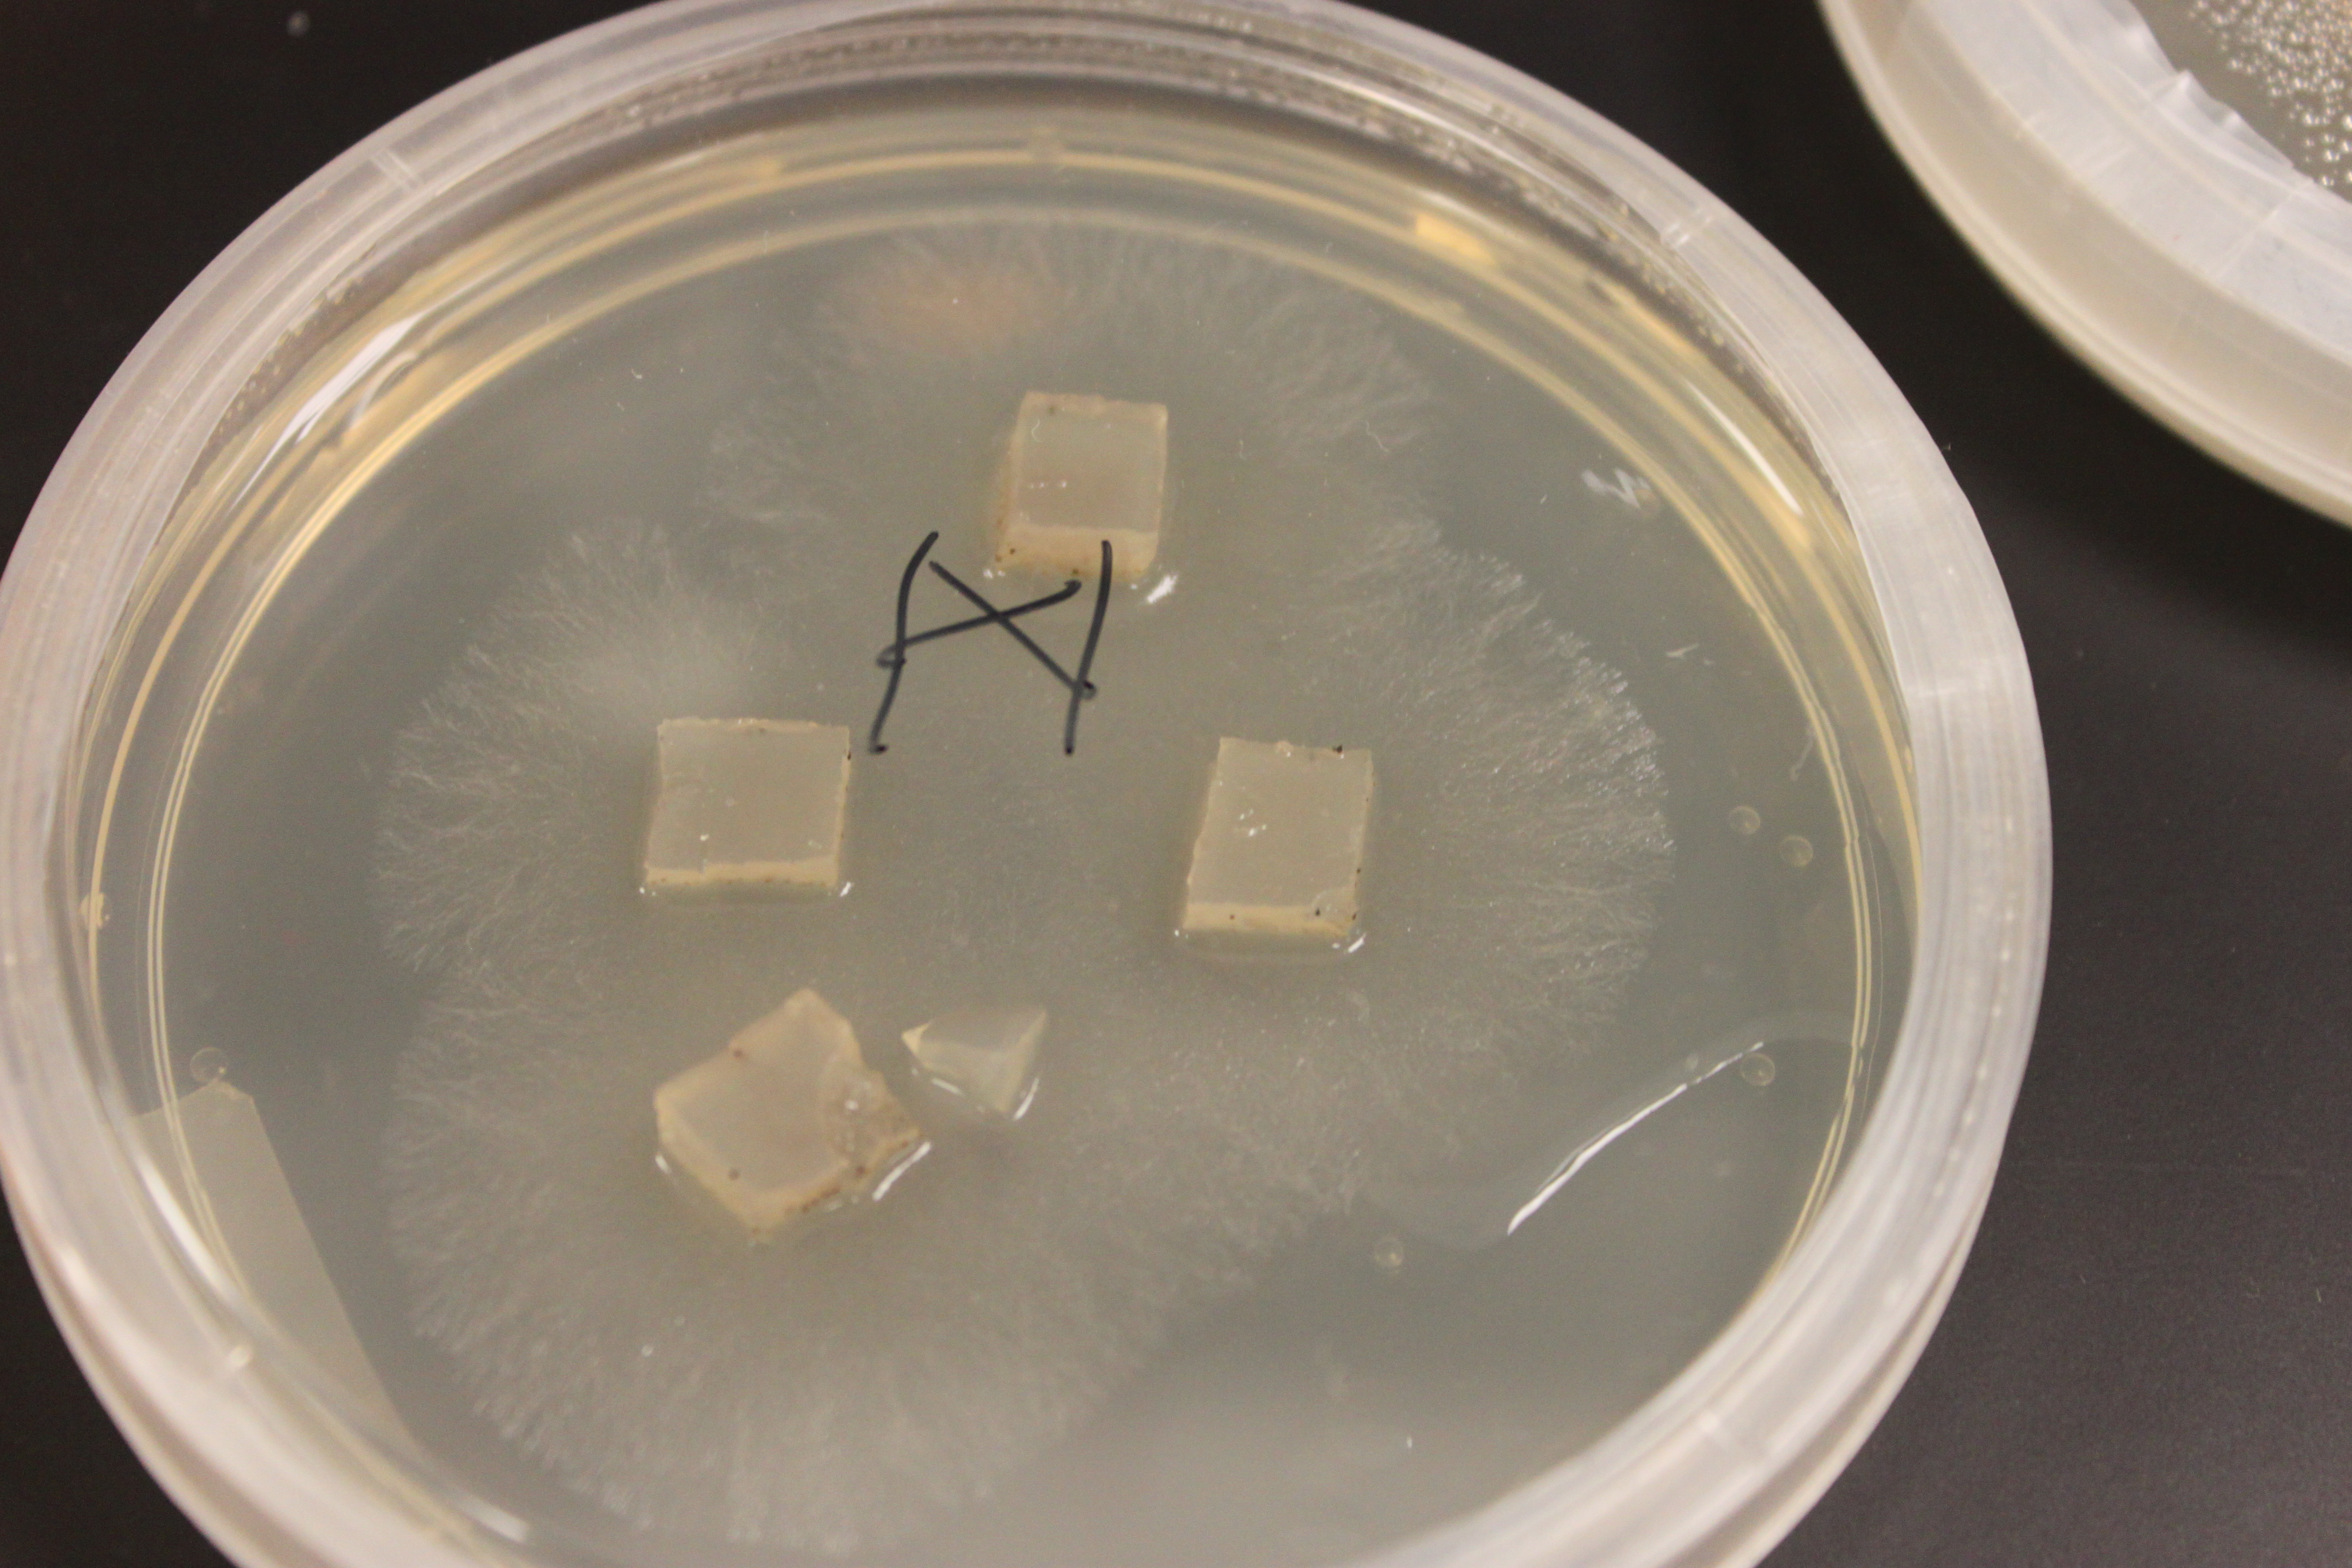 Image search what can grow on a nutrient agar plate